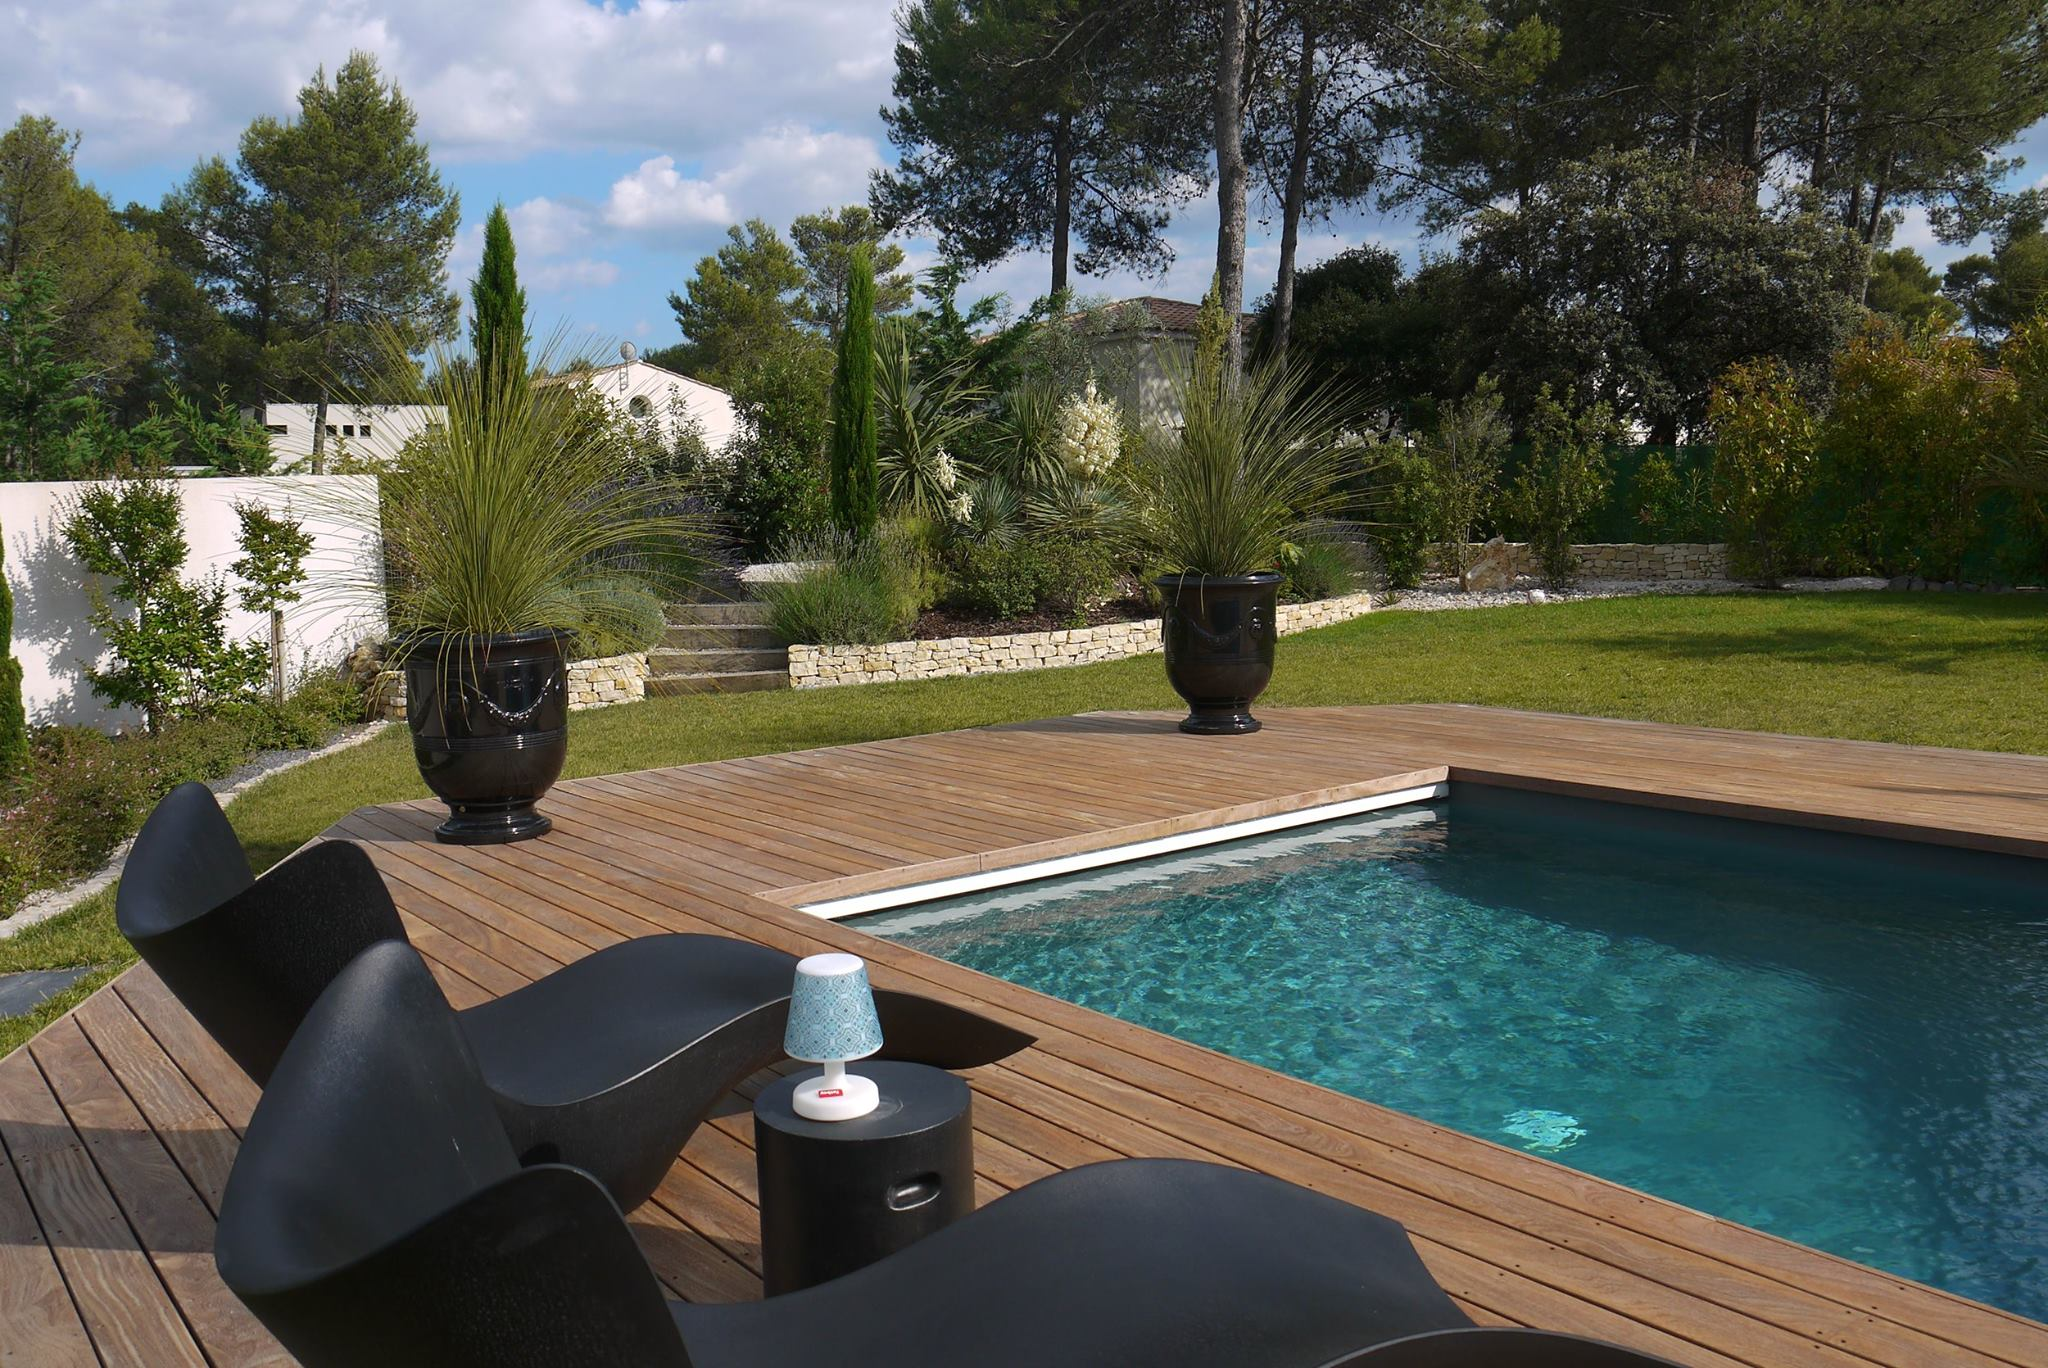 Paysagiste montpellier amenagement jardin decoration jardin for Ammenagement jardin